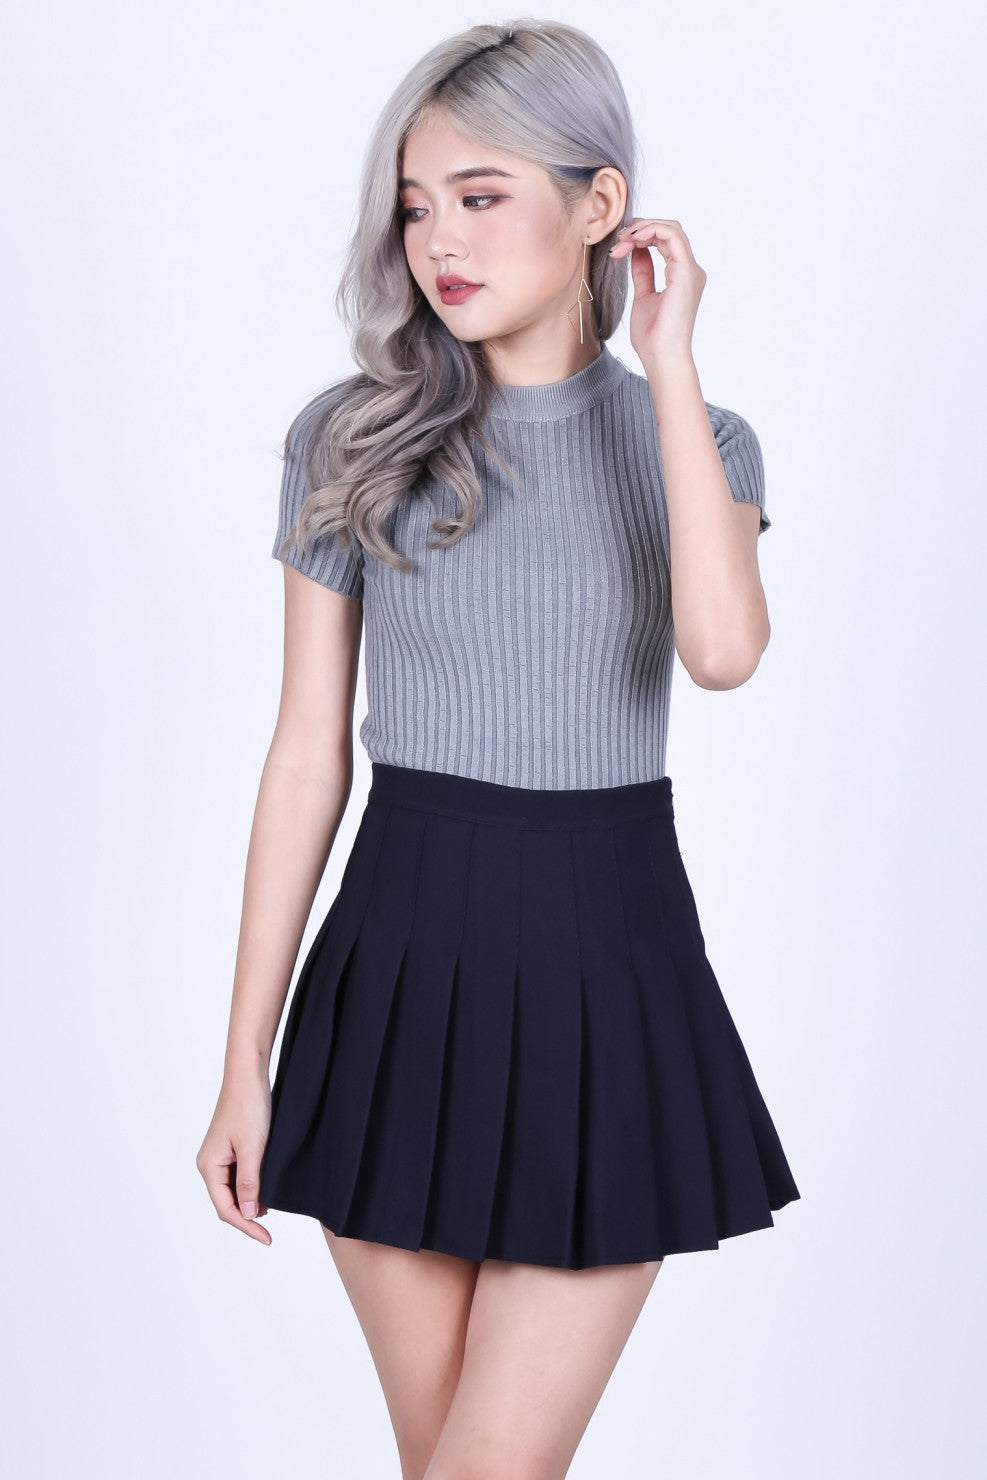 BROOKE SOFT KNIT TOP IN GREY - TOPAZETTE